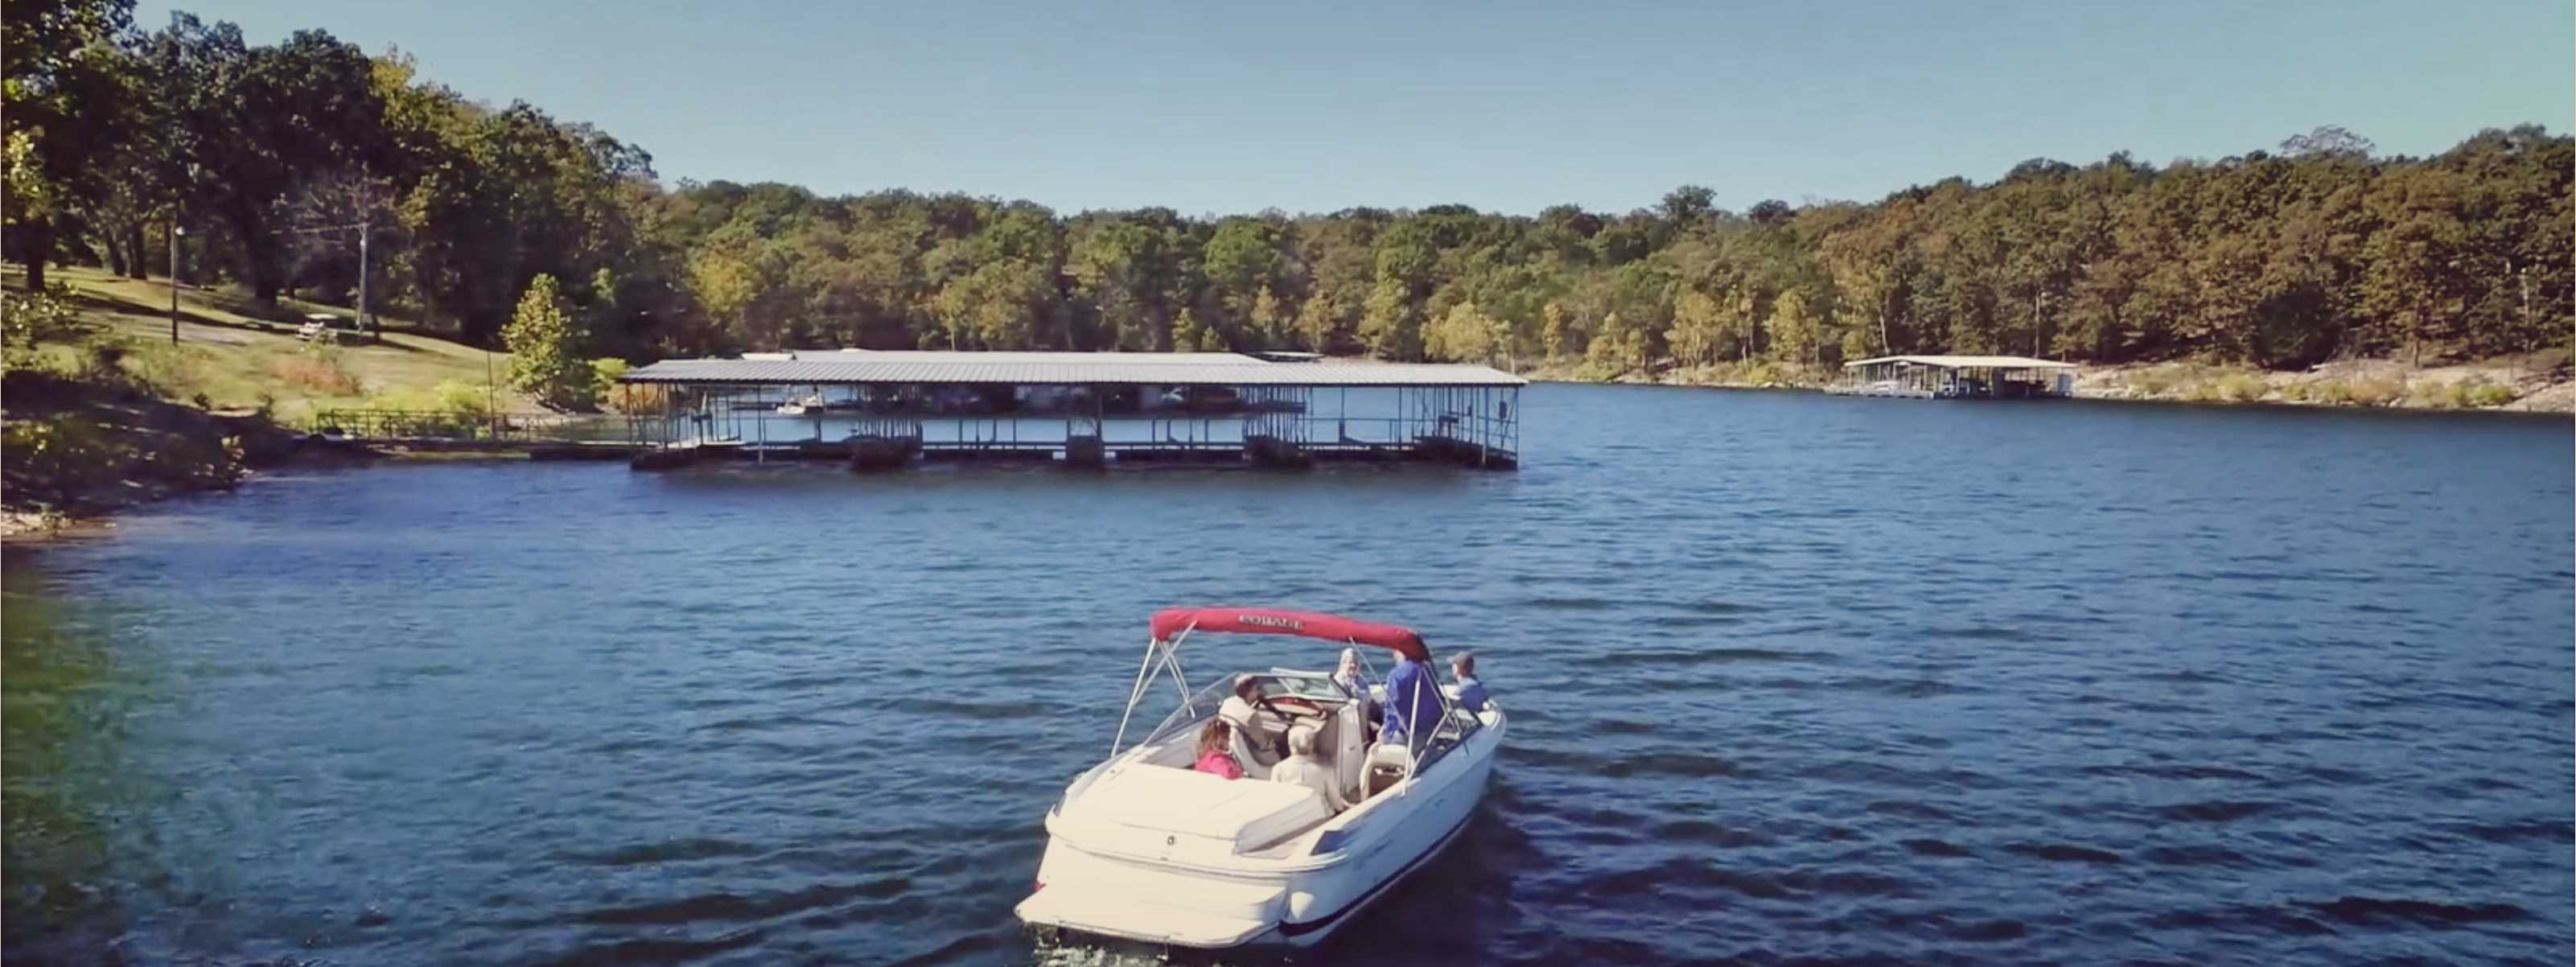 Dock Access - Boat Slip Real Estate for Sale On Table Rock Lake